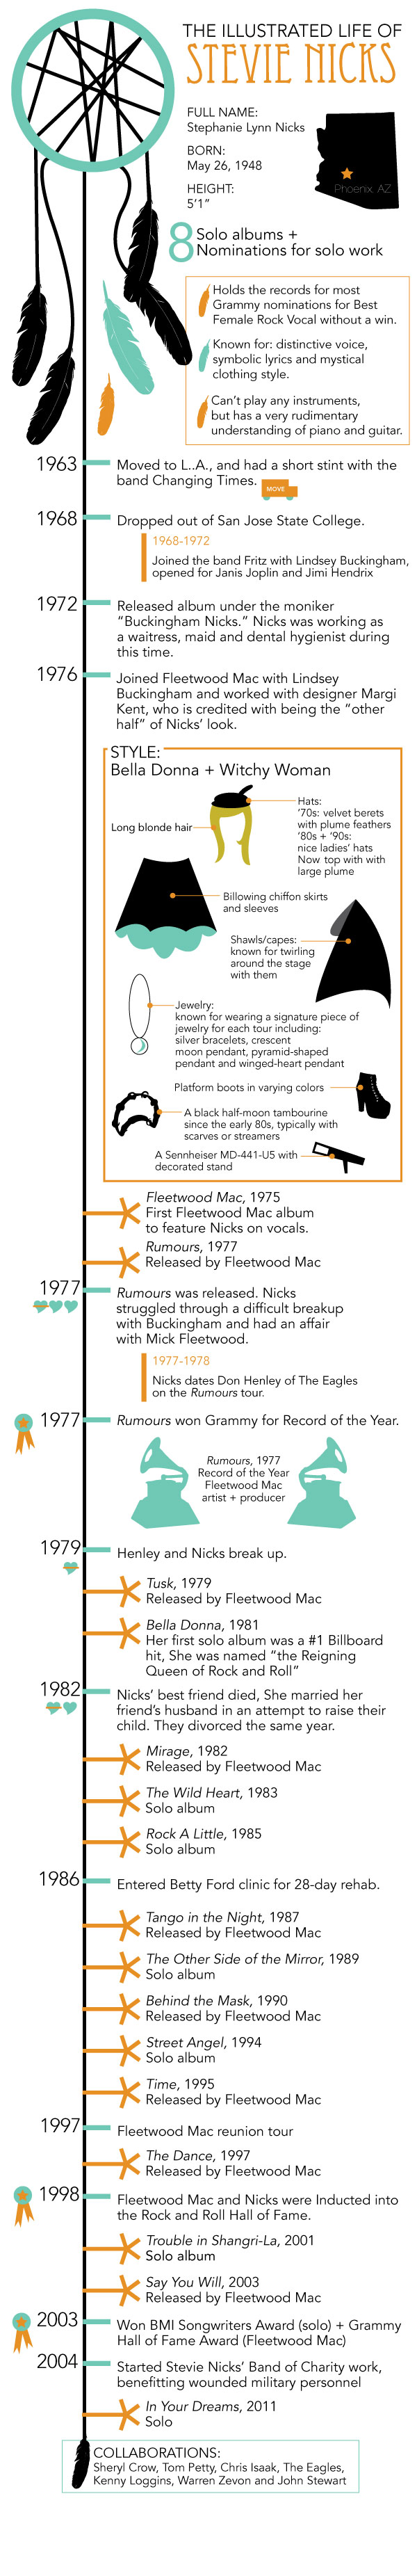 The-Illustrated-Life-Of-Stevie-Nicks-infographic